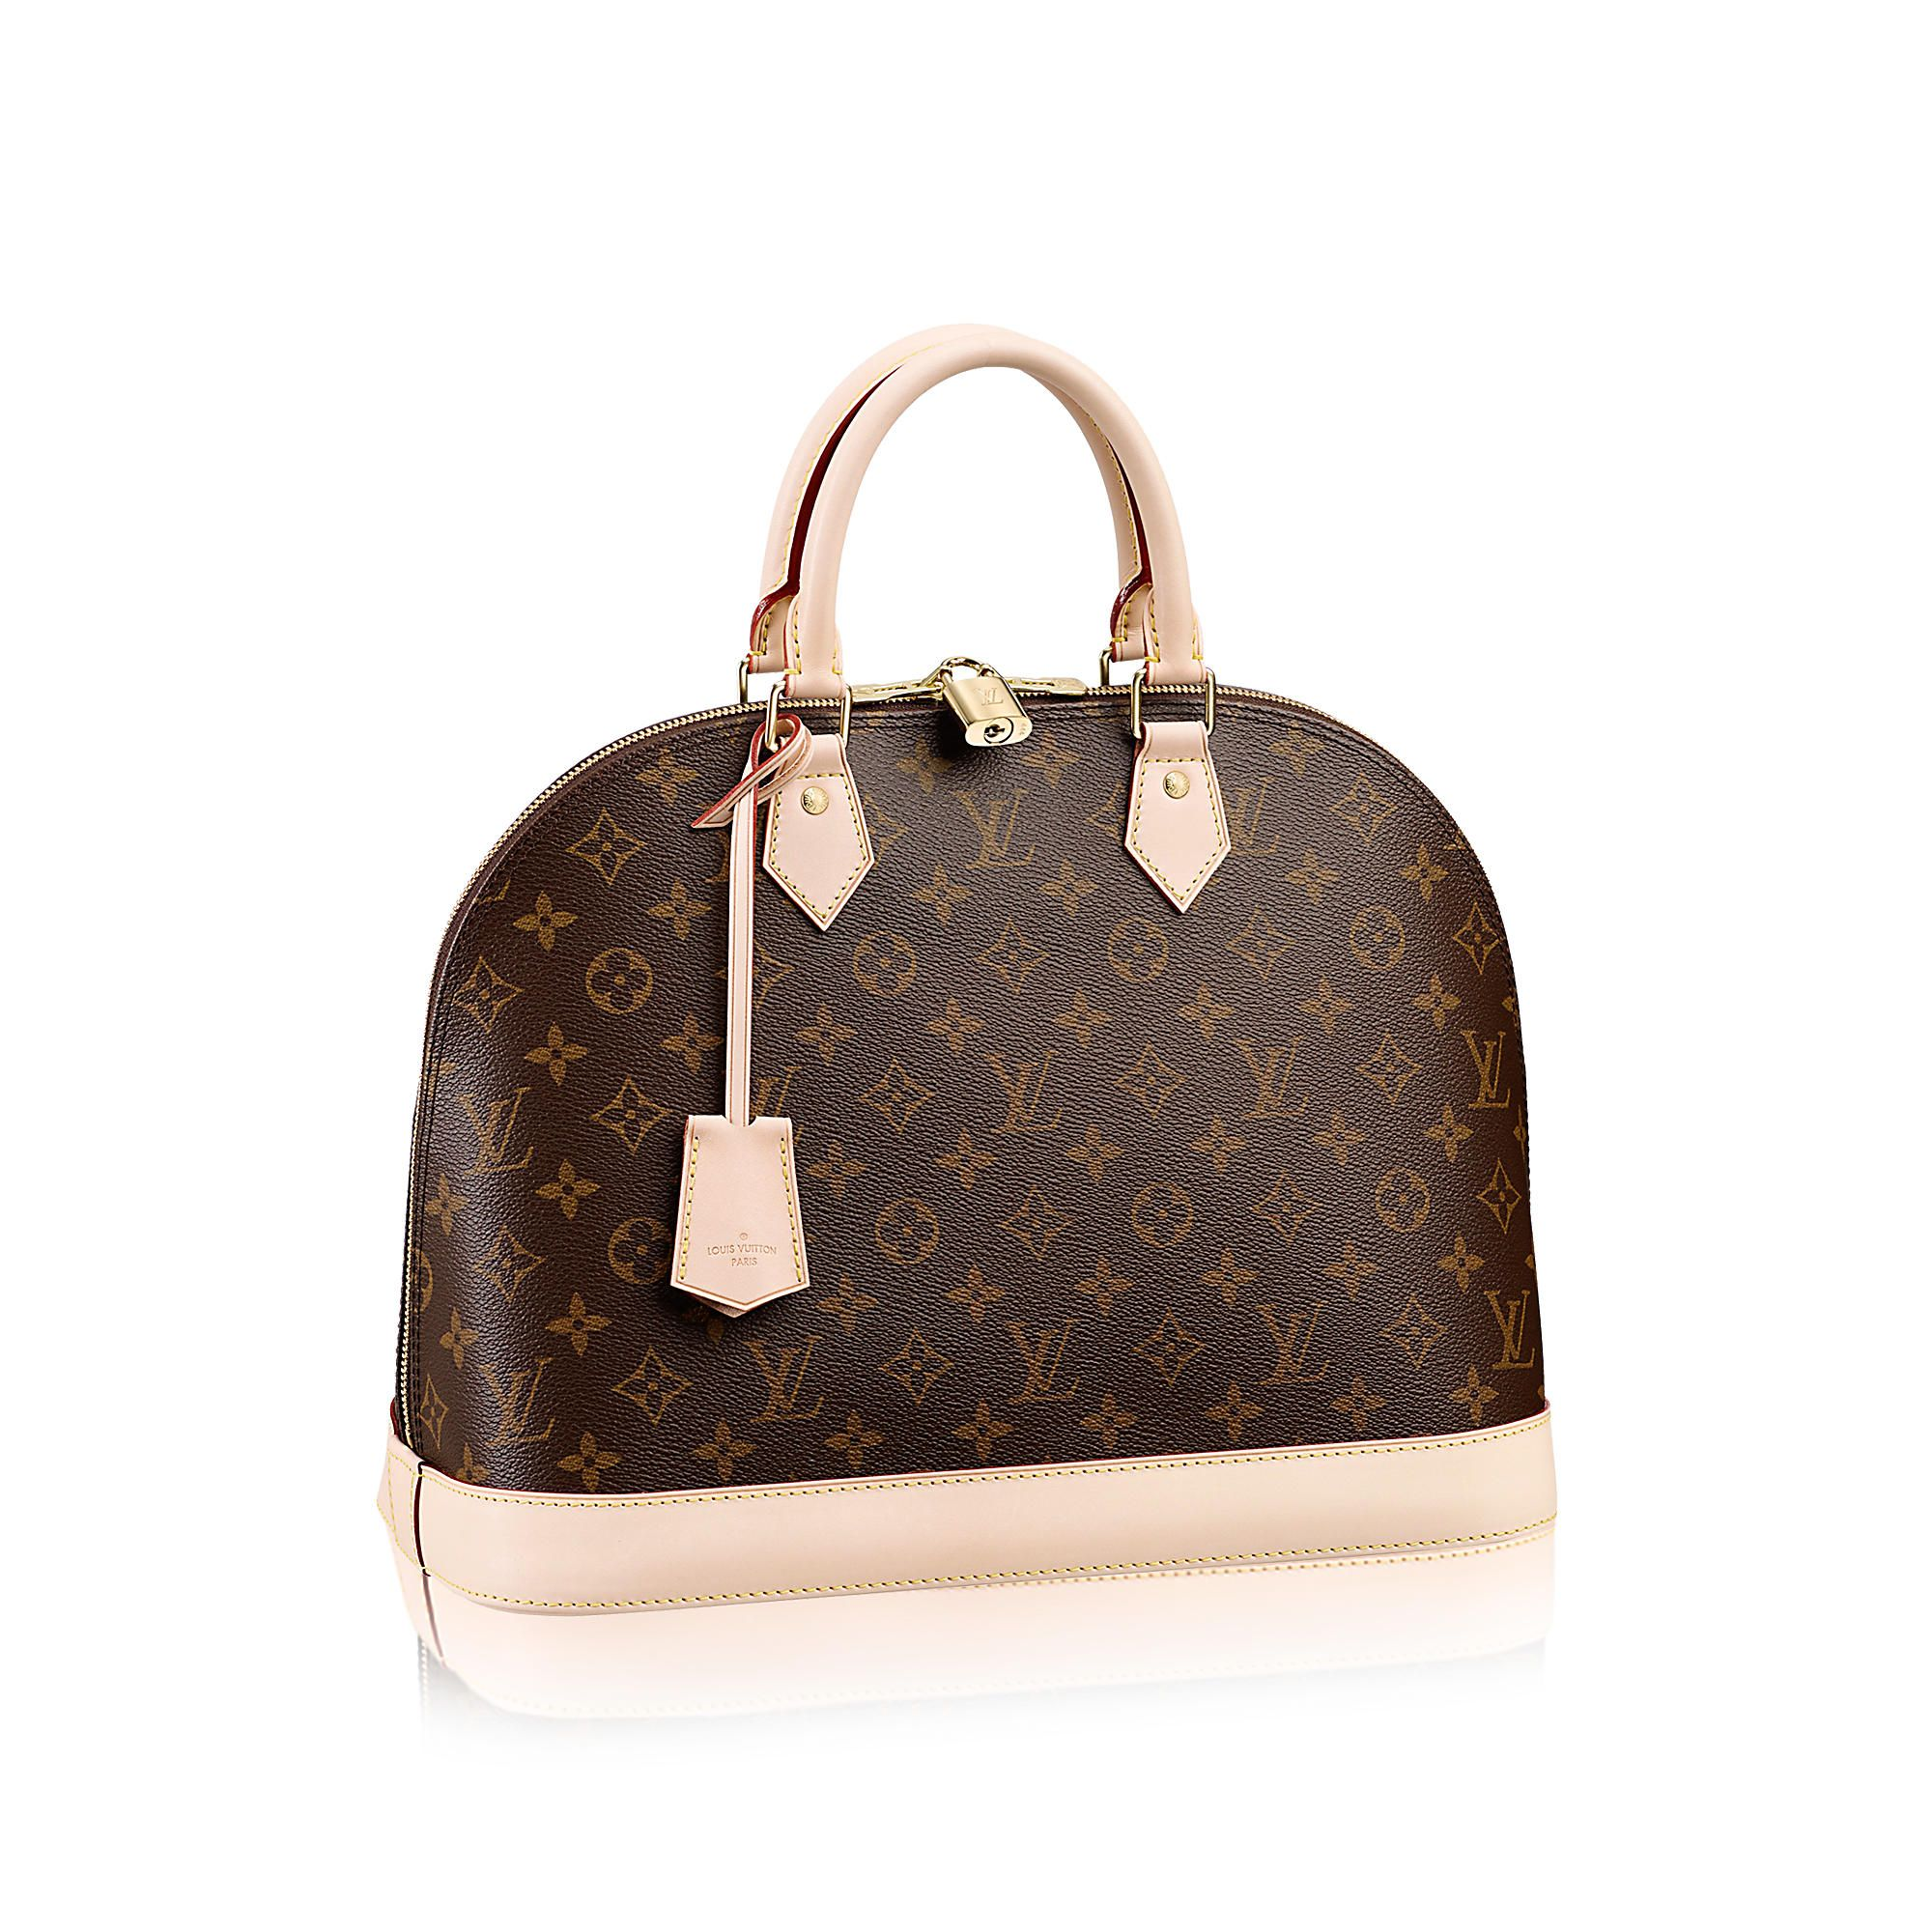 The Top 3 Louis Vuitton Handbags That You Must Have Pouted Online Magazine Latest Design Trends Louis Vuitton Handbags Louis Vuitton Alma Louis Vuitton Bag